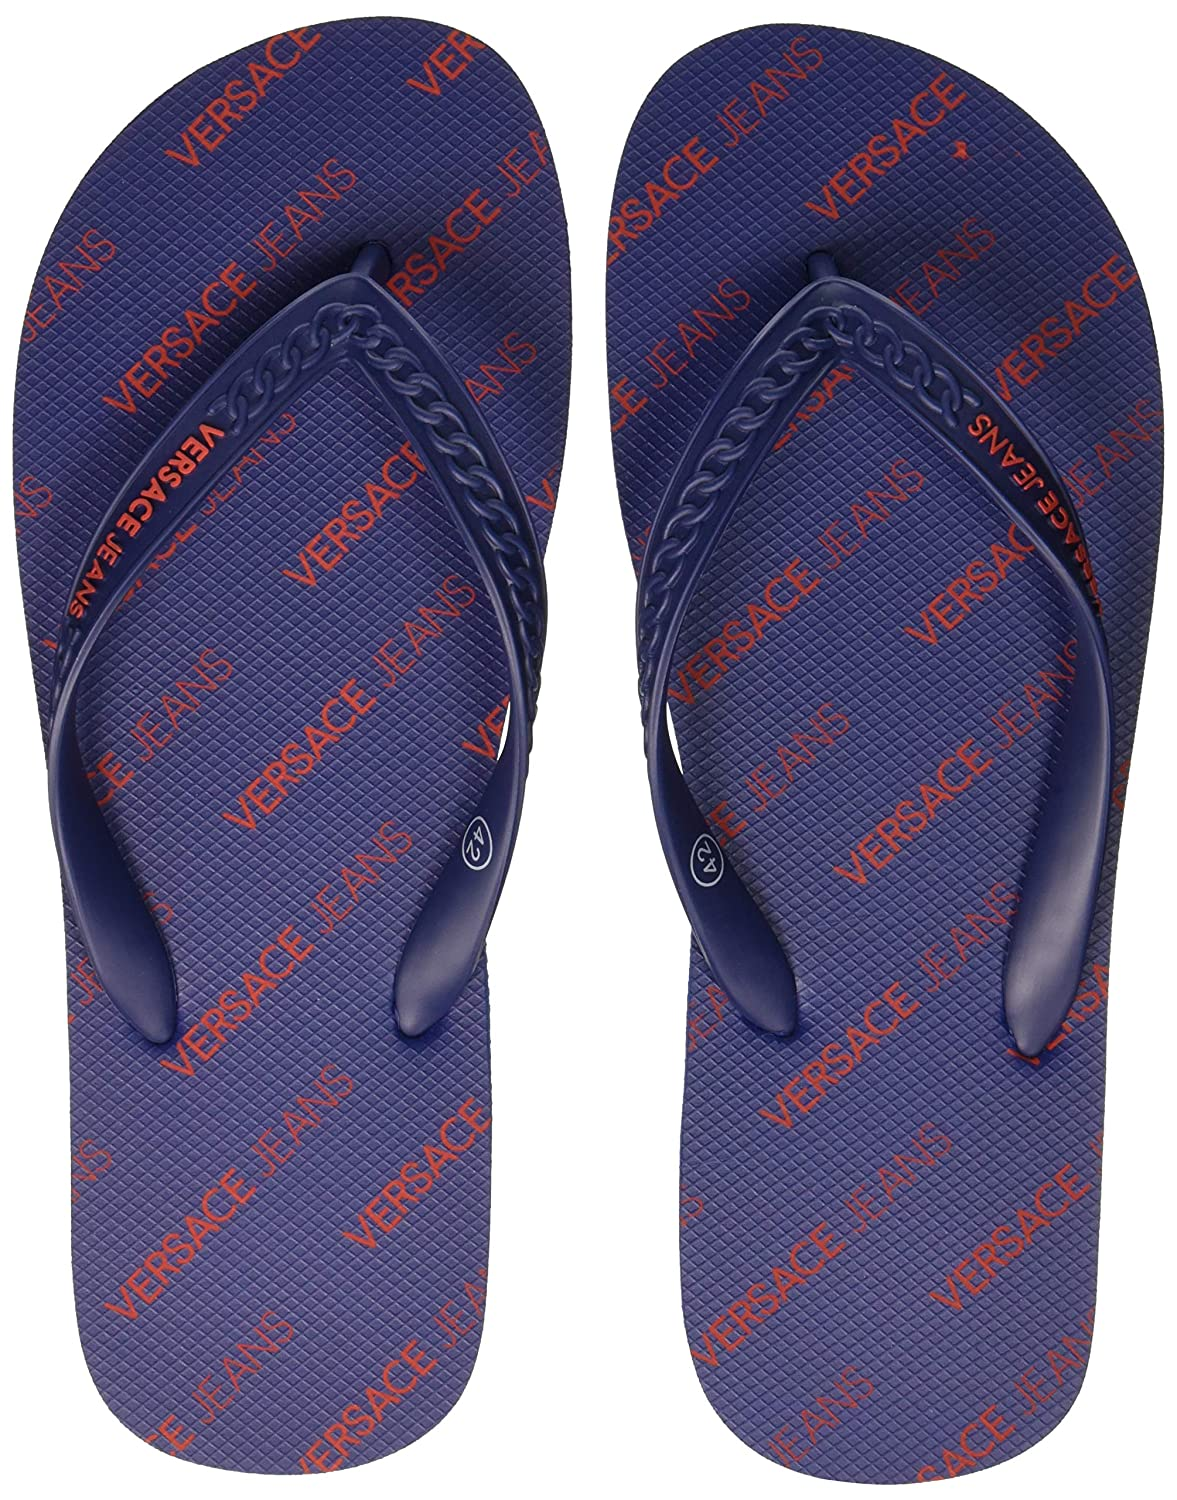 VERSACE JEANS COUTURE Shoes, Chanclas para Hombre